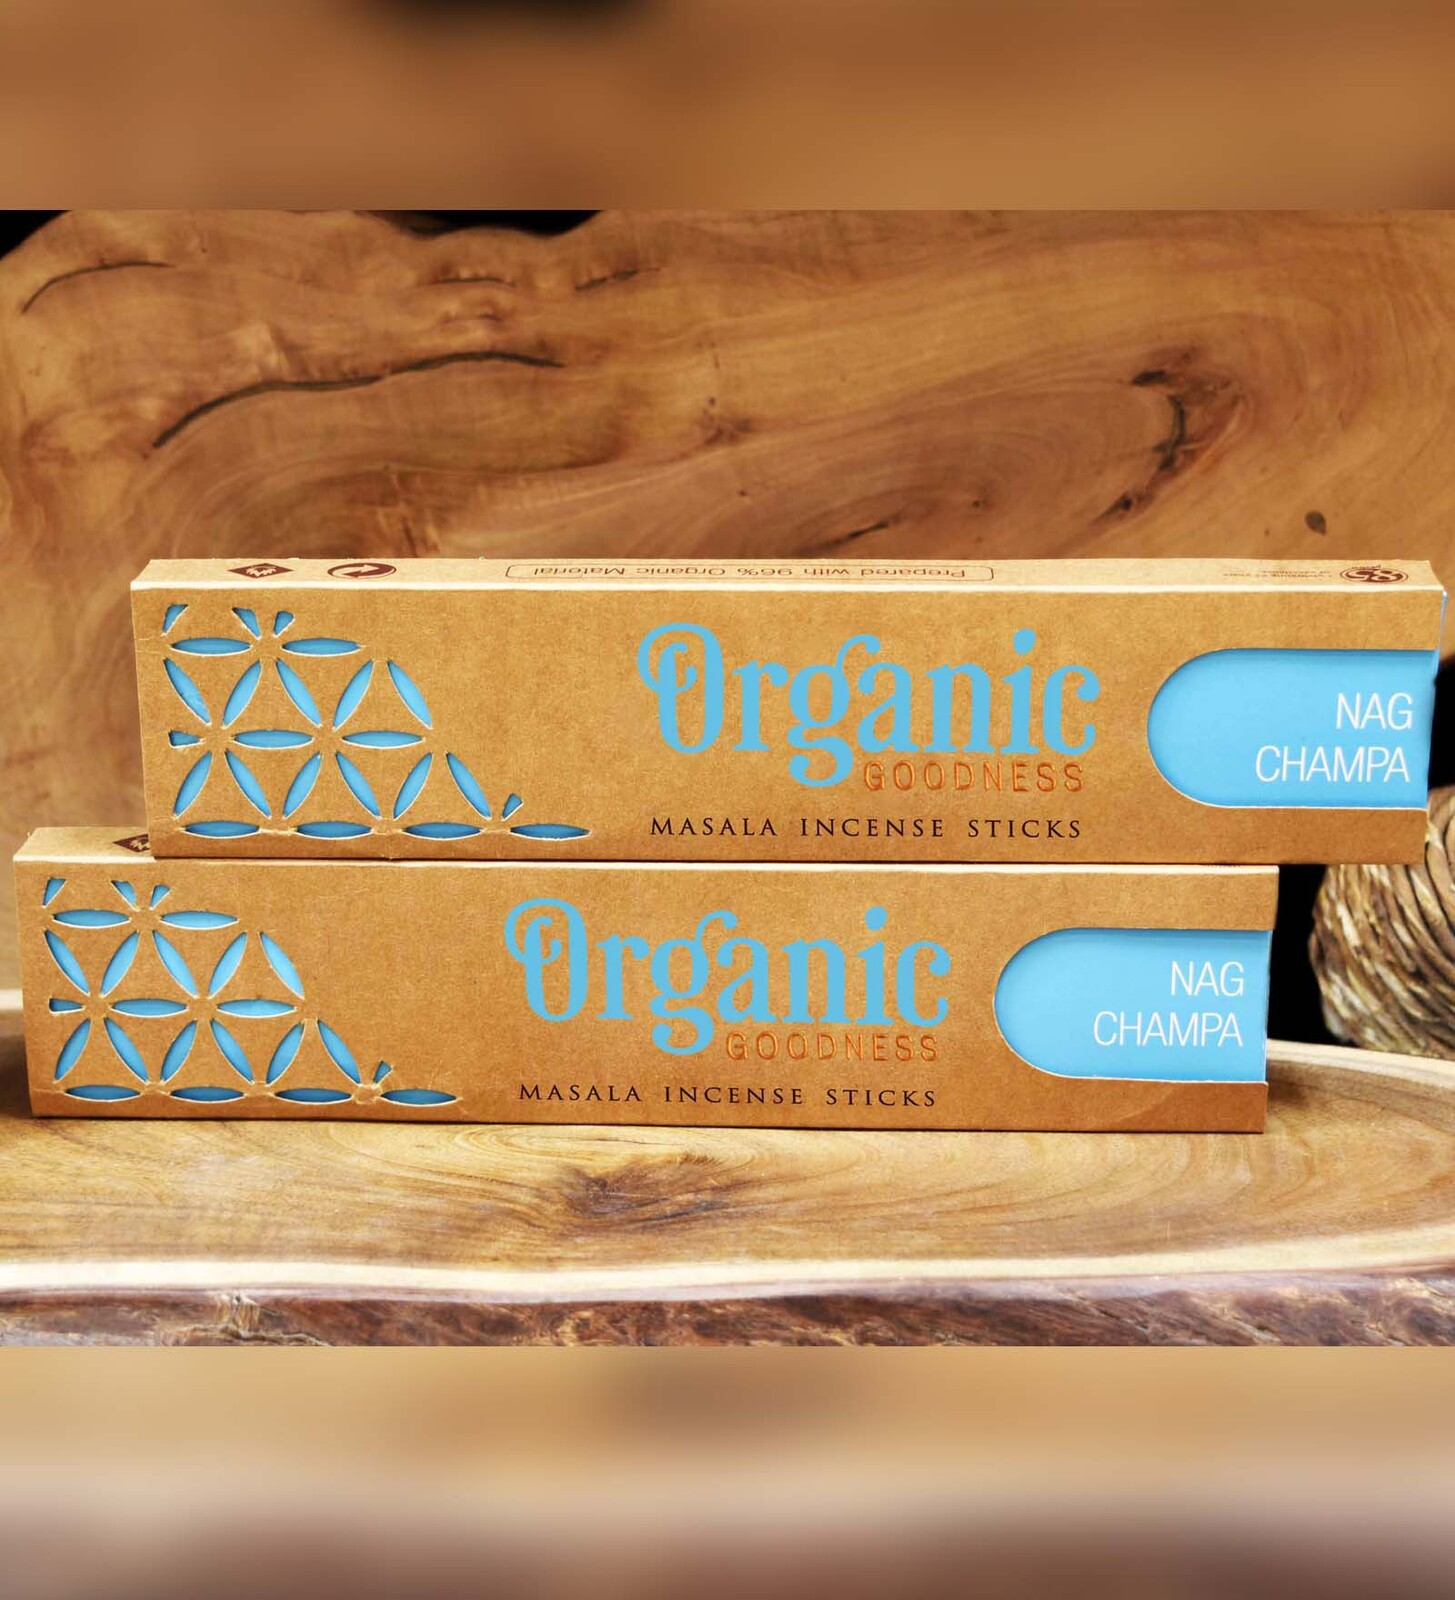 Organic Goodness Masala Incense - NAG CHAMPA